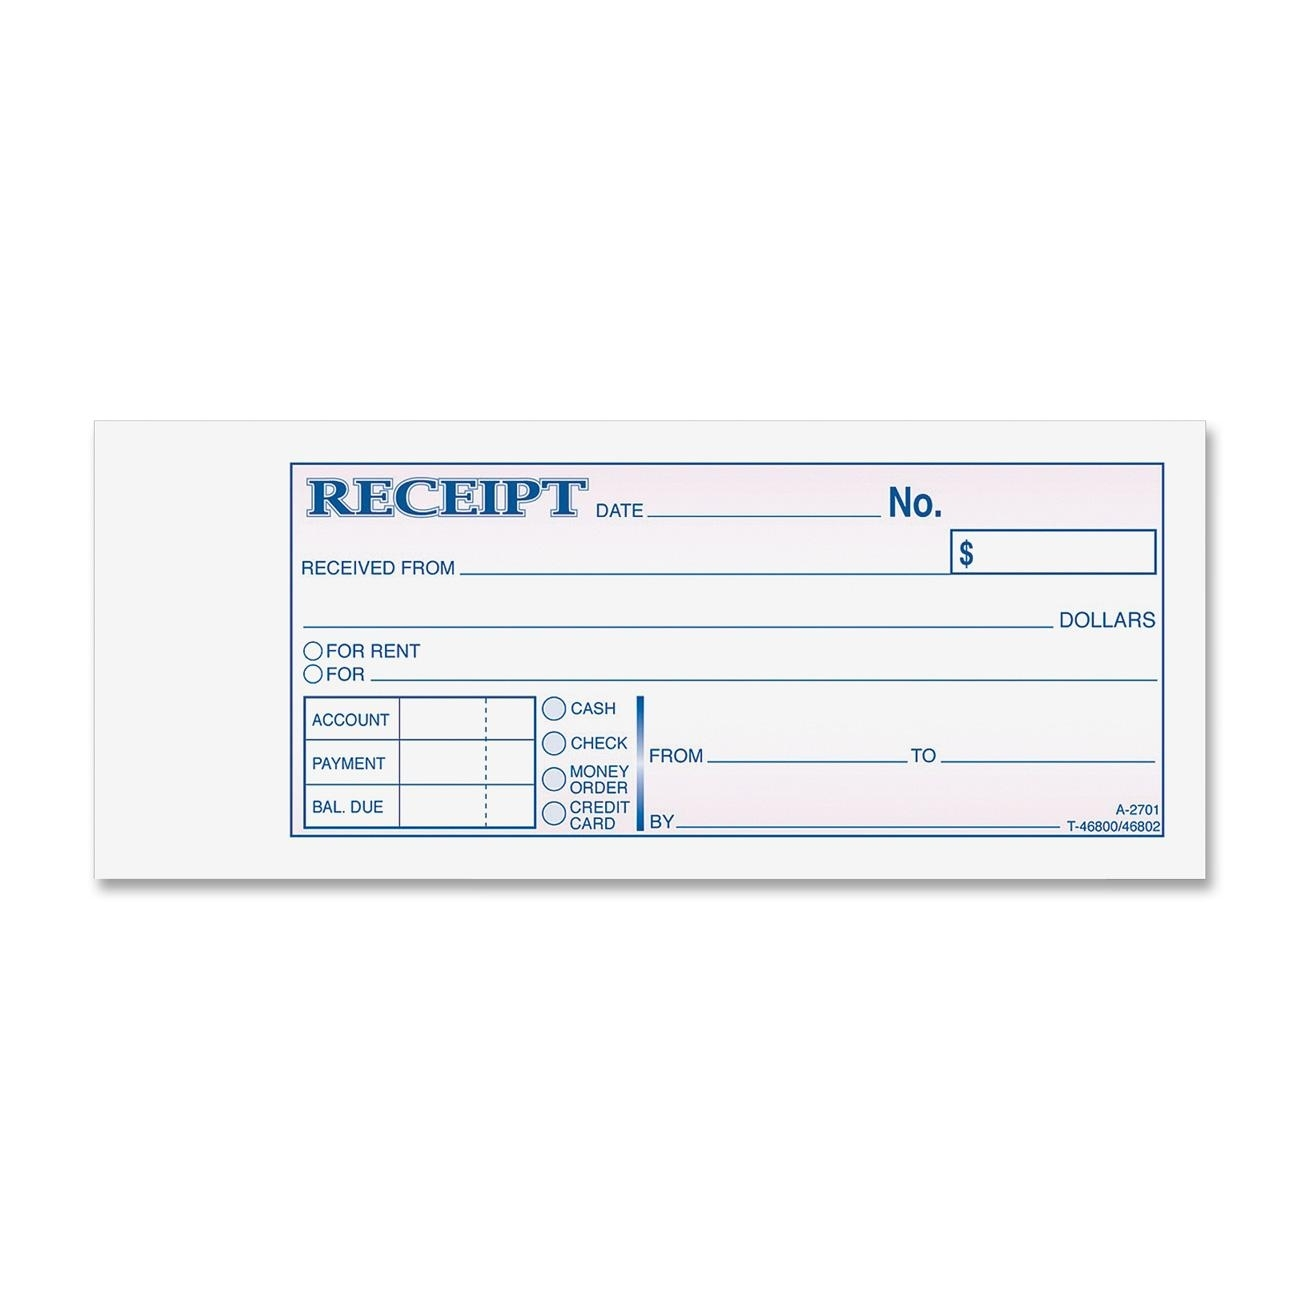 adams tc2701 carbonless receipt book 50 sheets tape bound 3 carbonless invoice books